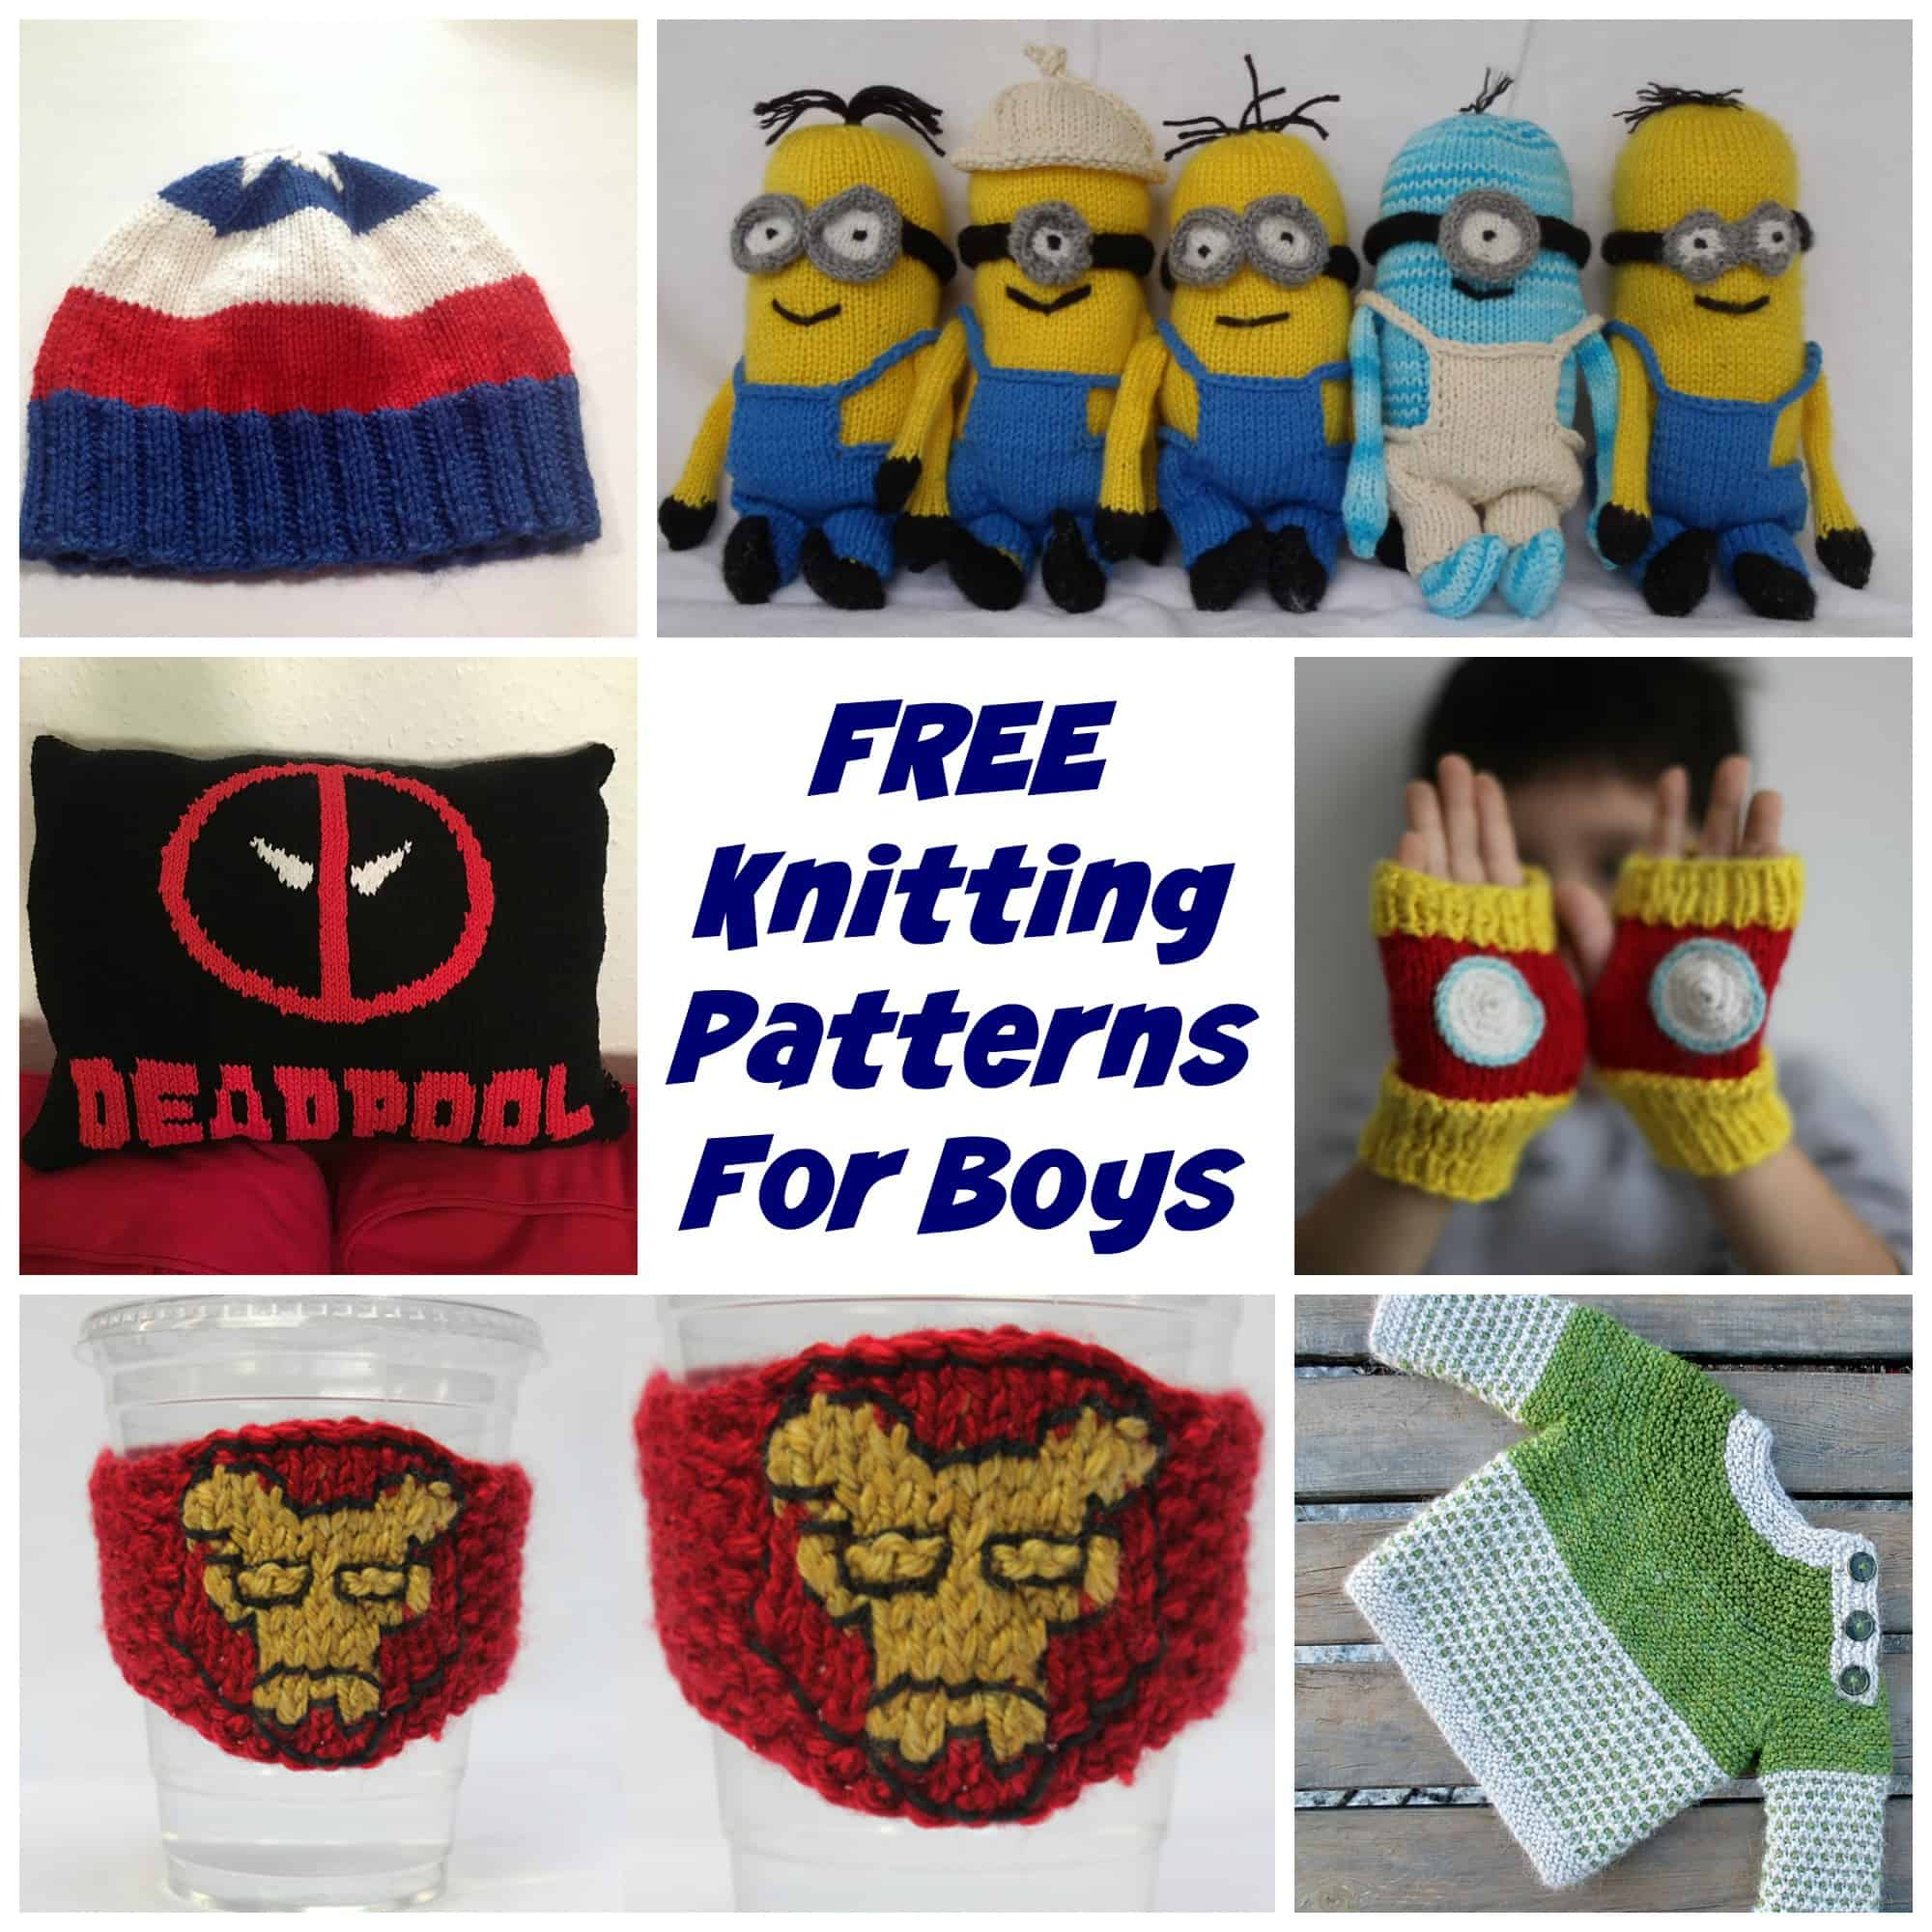 HUGE List of free knitting patterns for boys including hats, sweaters and toys